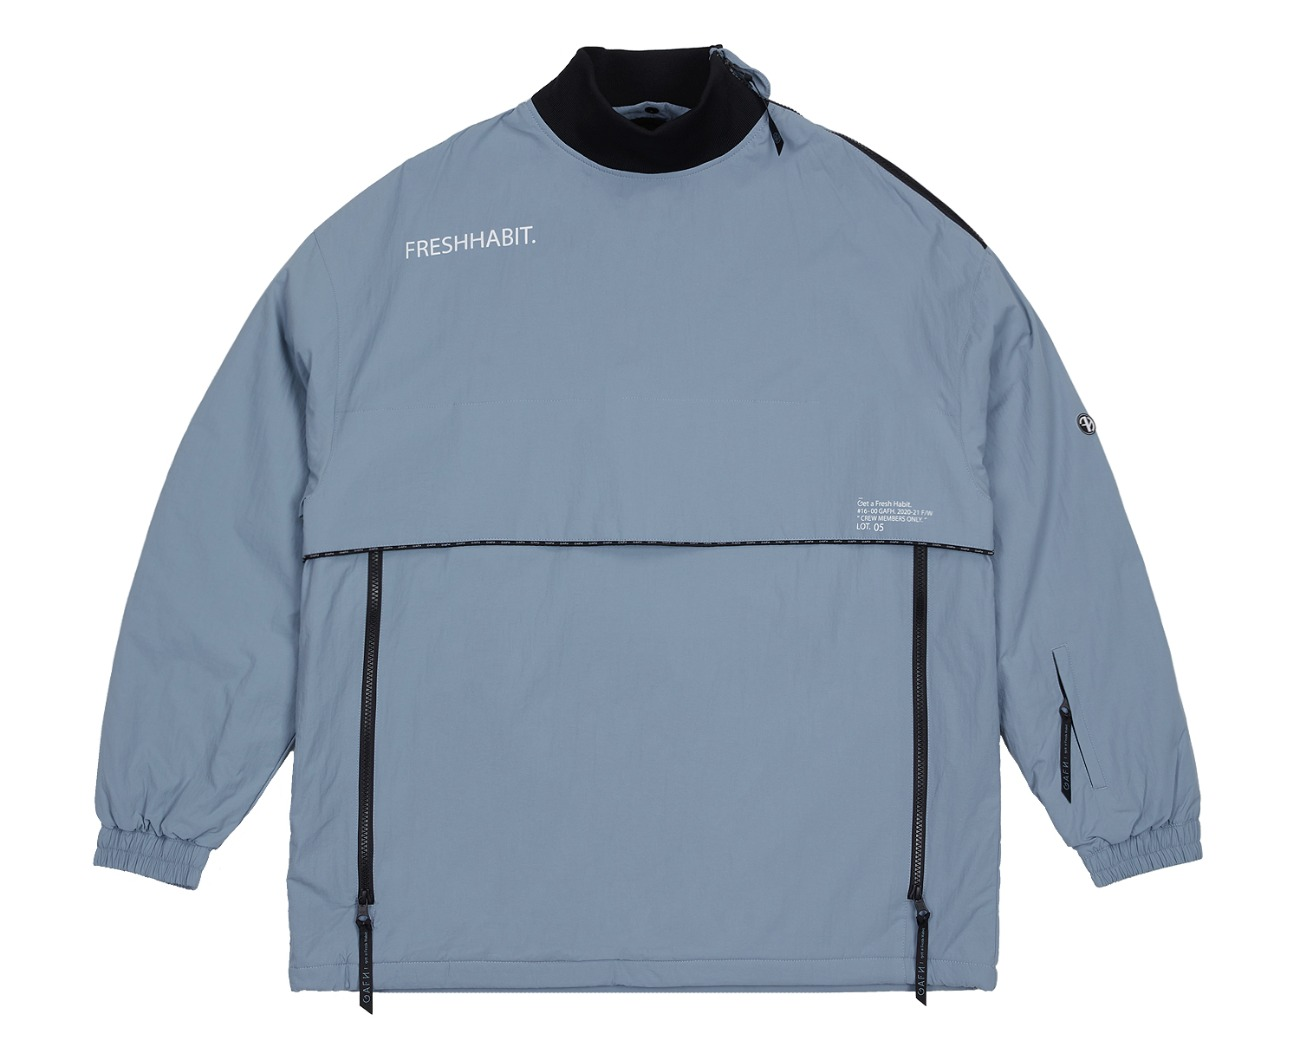 SHOULDER ZIP UP PULLOVER SMOKE BLUE / GAFH